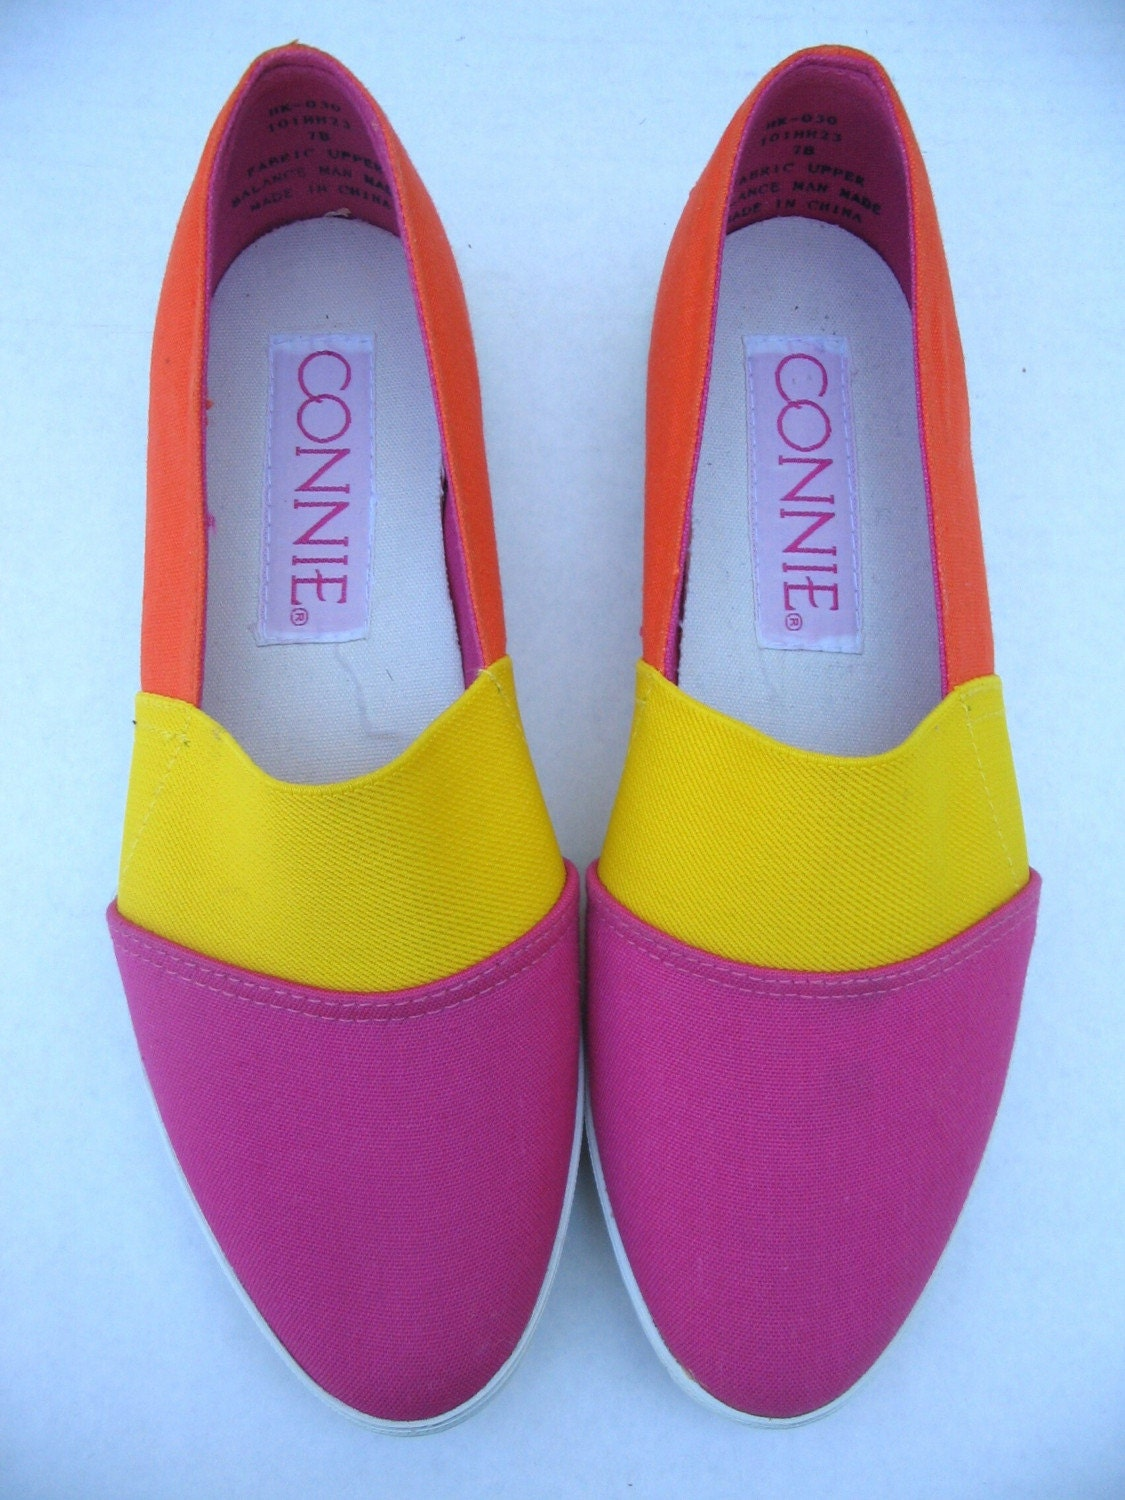 Find and save ideas about Neon shoes on Pinterest. | See more ideas about Neon pumps, Yellow shoes outfit and Black blazer with jeans. Women's fashion. Neon shoes; Neon shoes. Neon pumps Wild Diva Flat Shoes 9 Beautiful bright neon shoes size 9 brand wild diva. No box no tag. Were tried on but not worn outside.